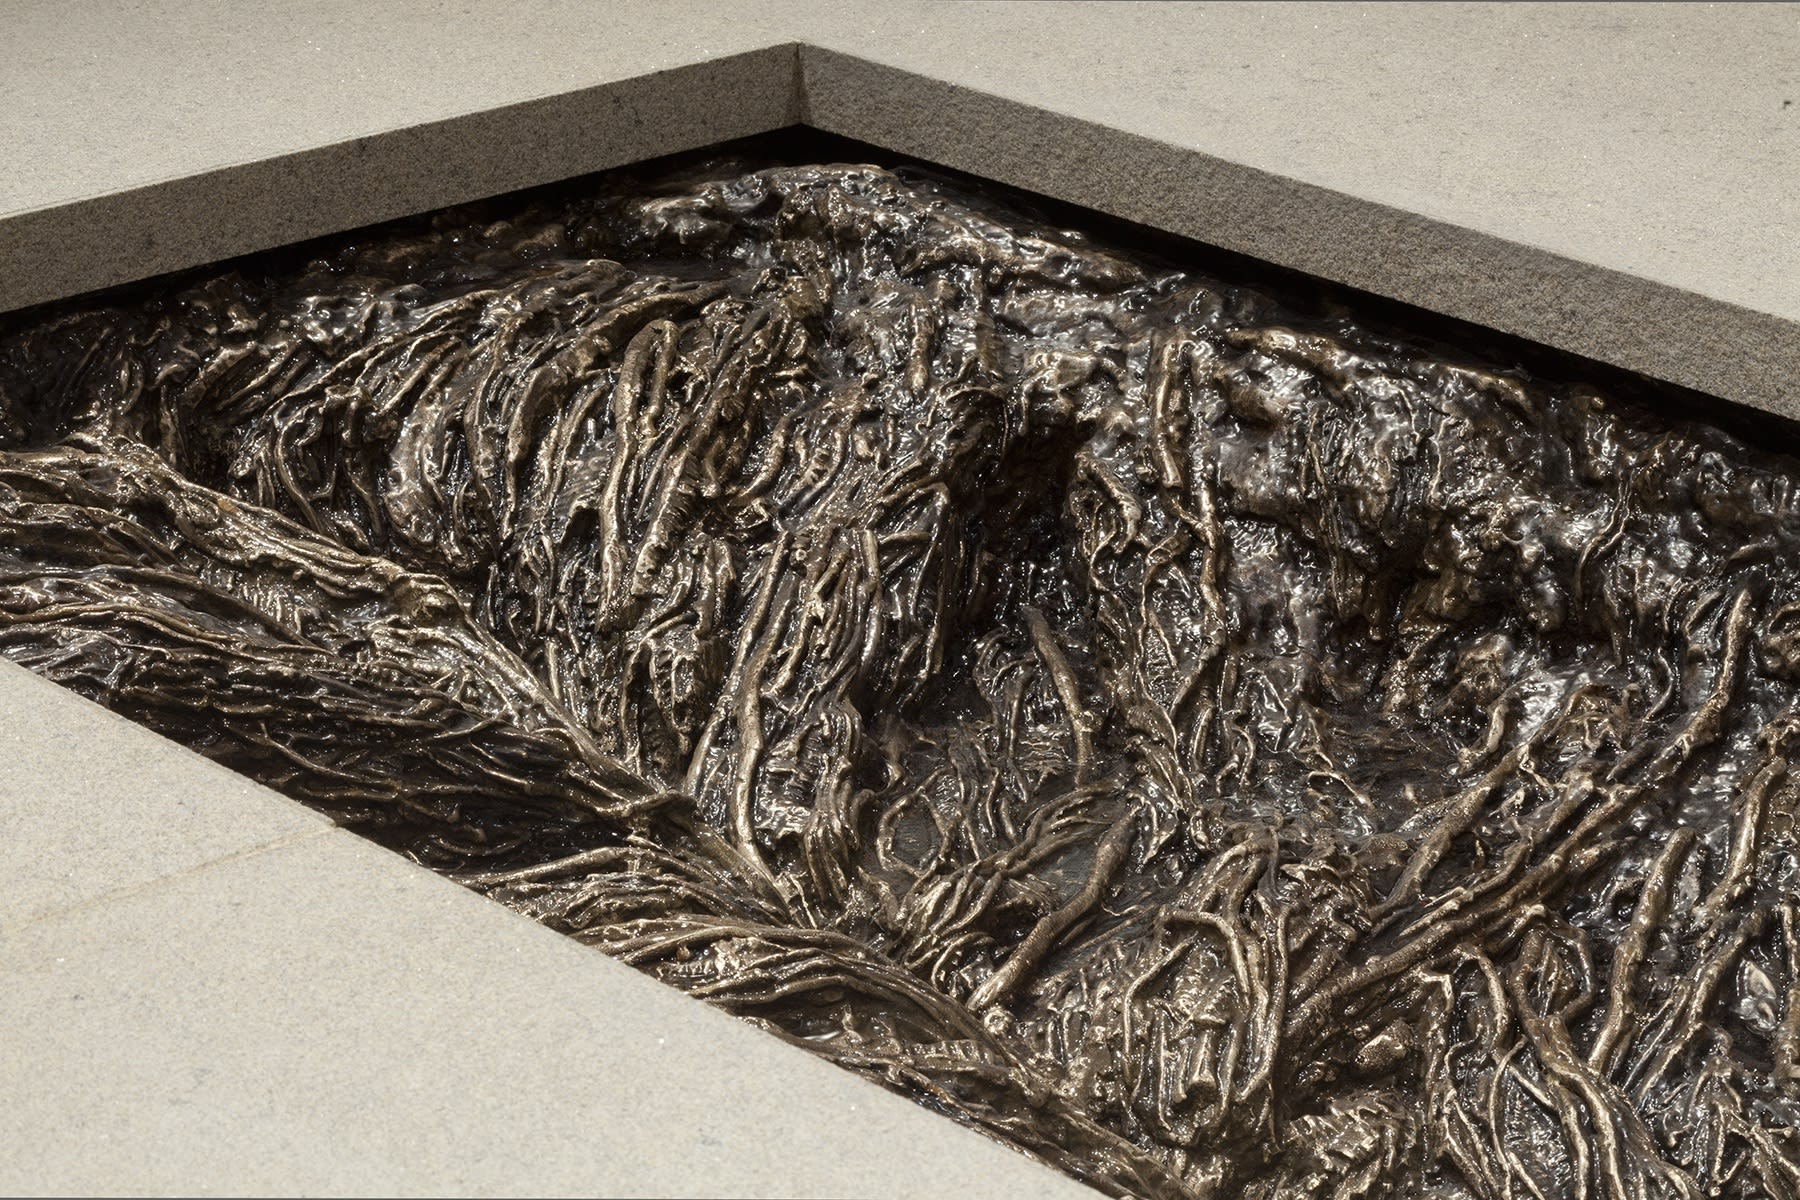 A rectangular cut away reveals a system of cast roots close up.